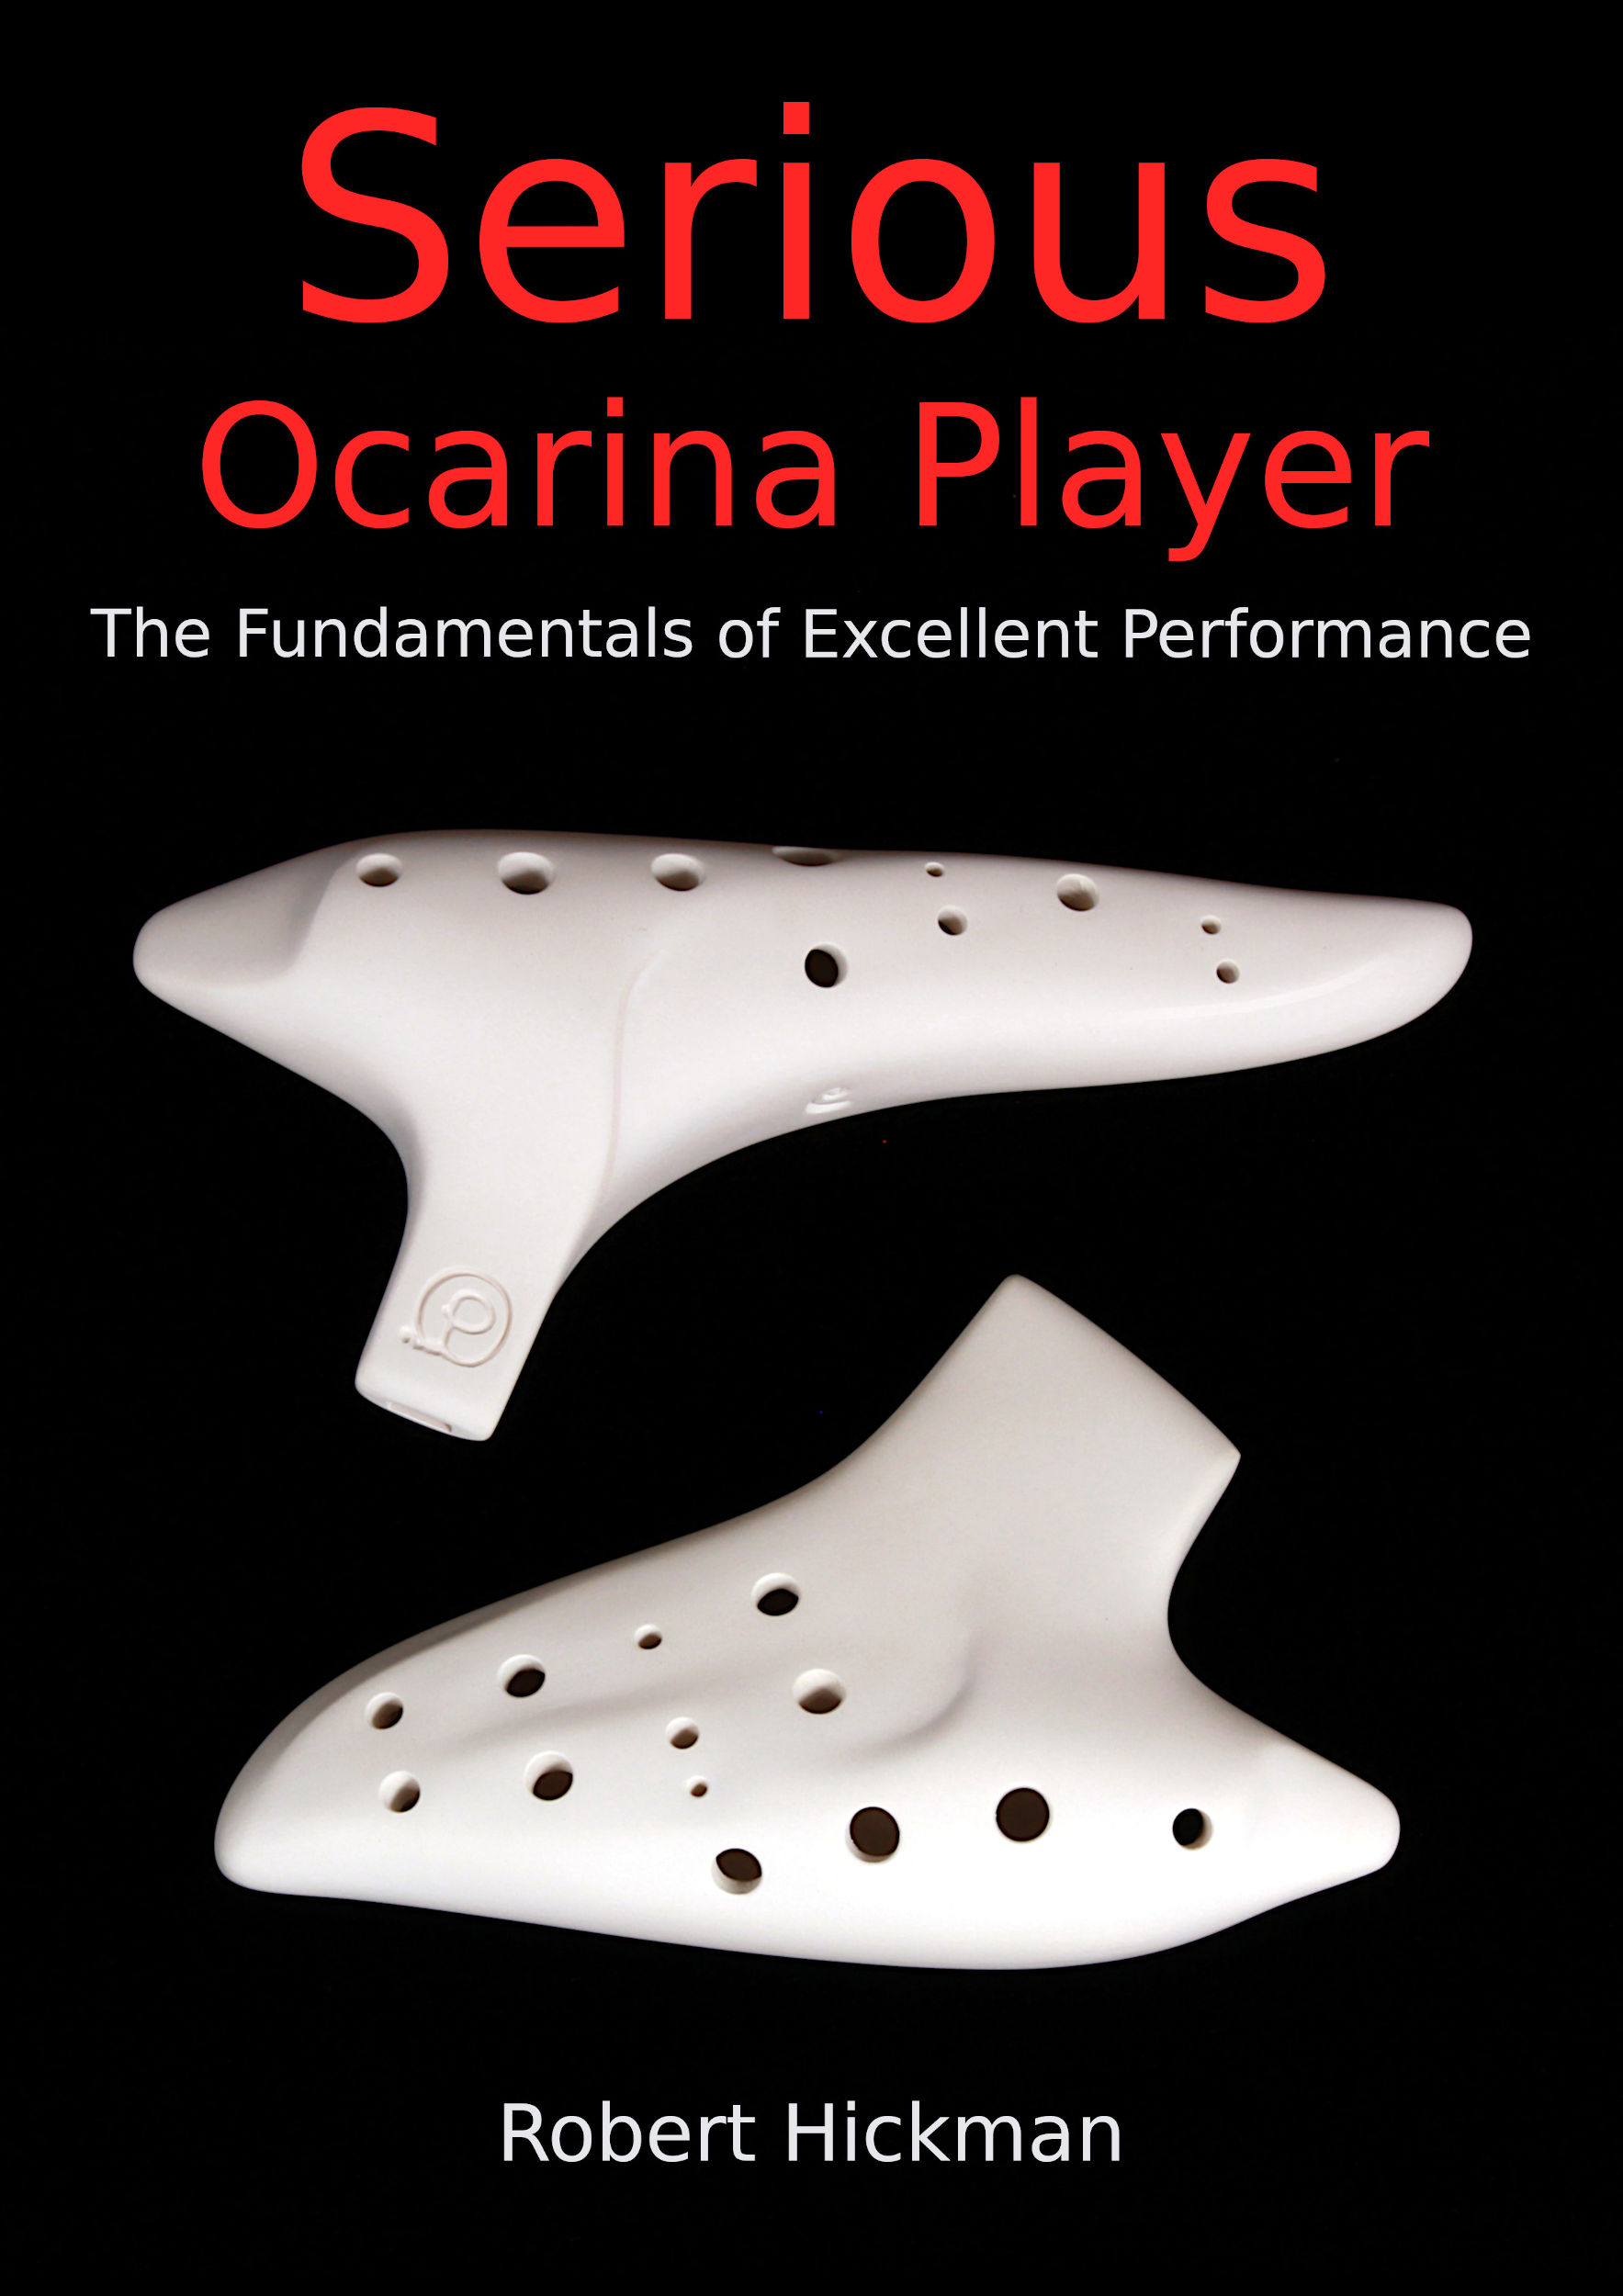 Serious Ocarina Player book cover image